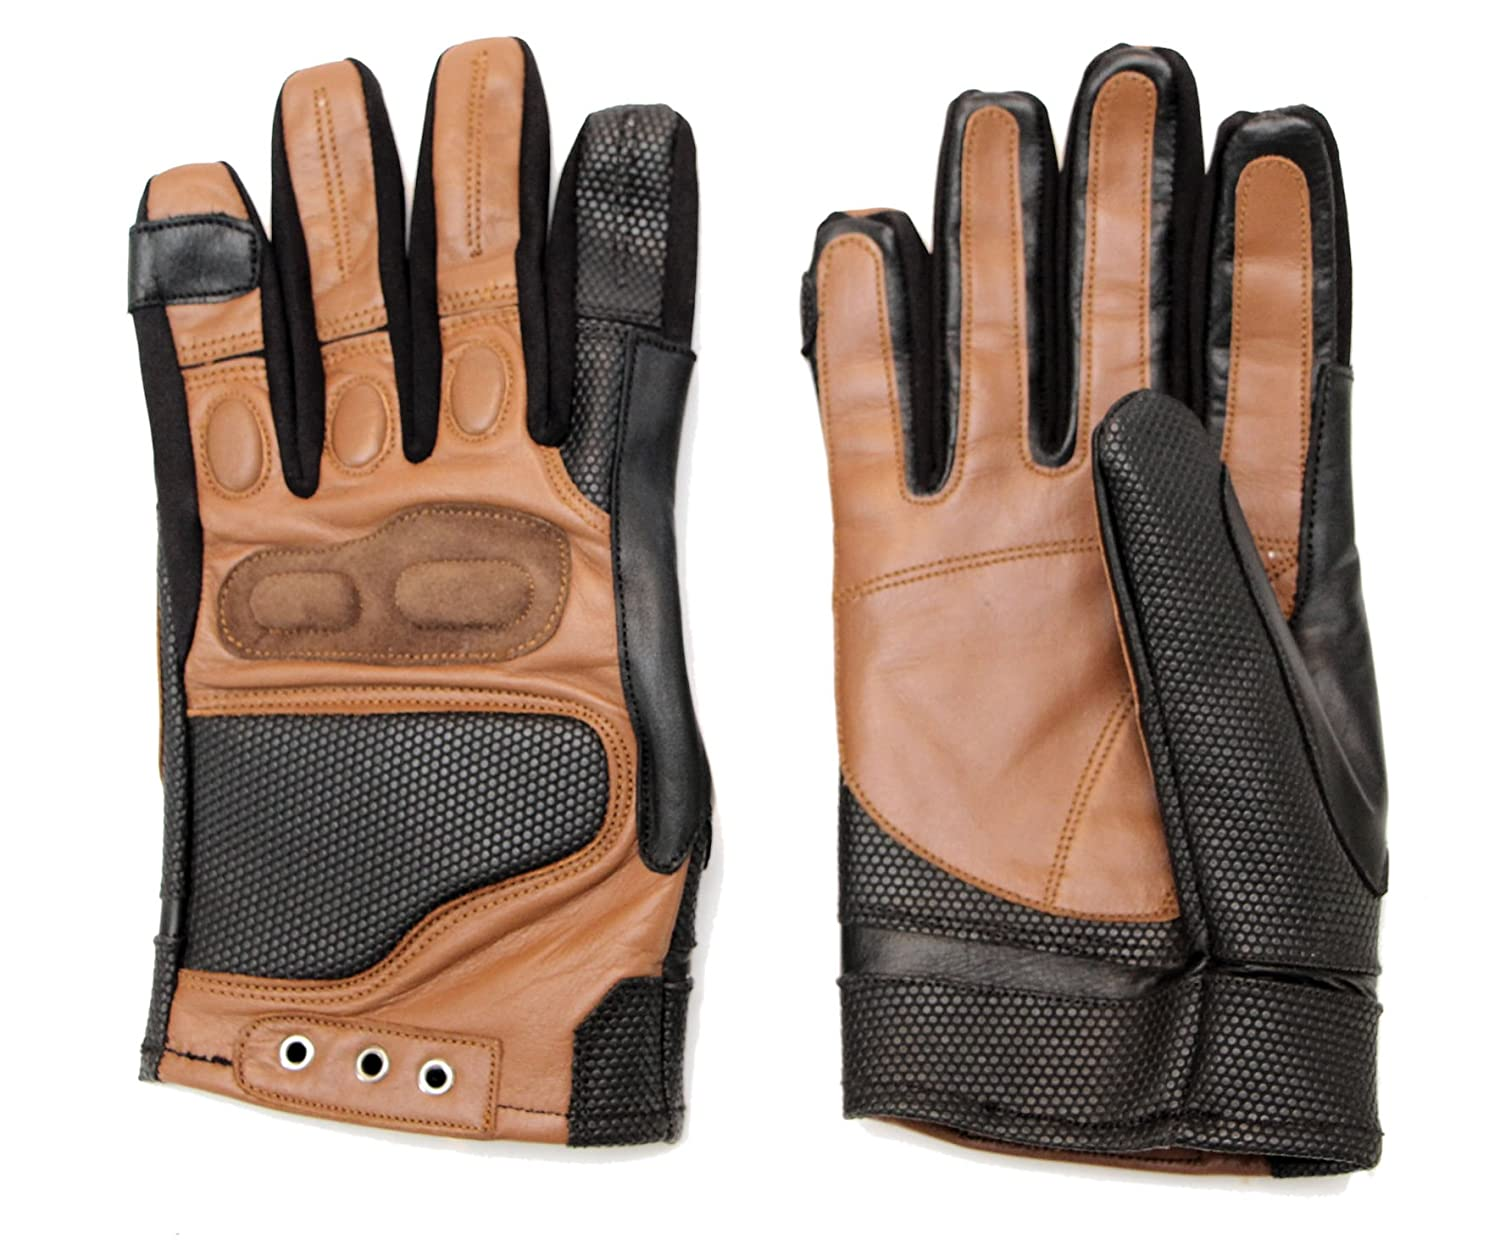 Men's Star-Lord Peter Quill Brown Real Leather Tactical Gloves - DeluxeAdultCostumes.com